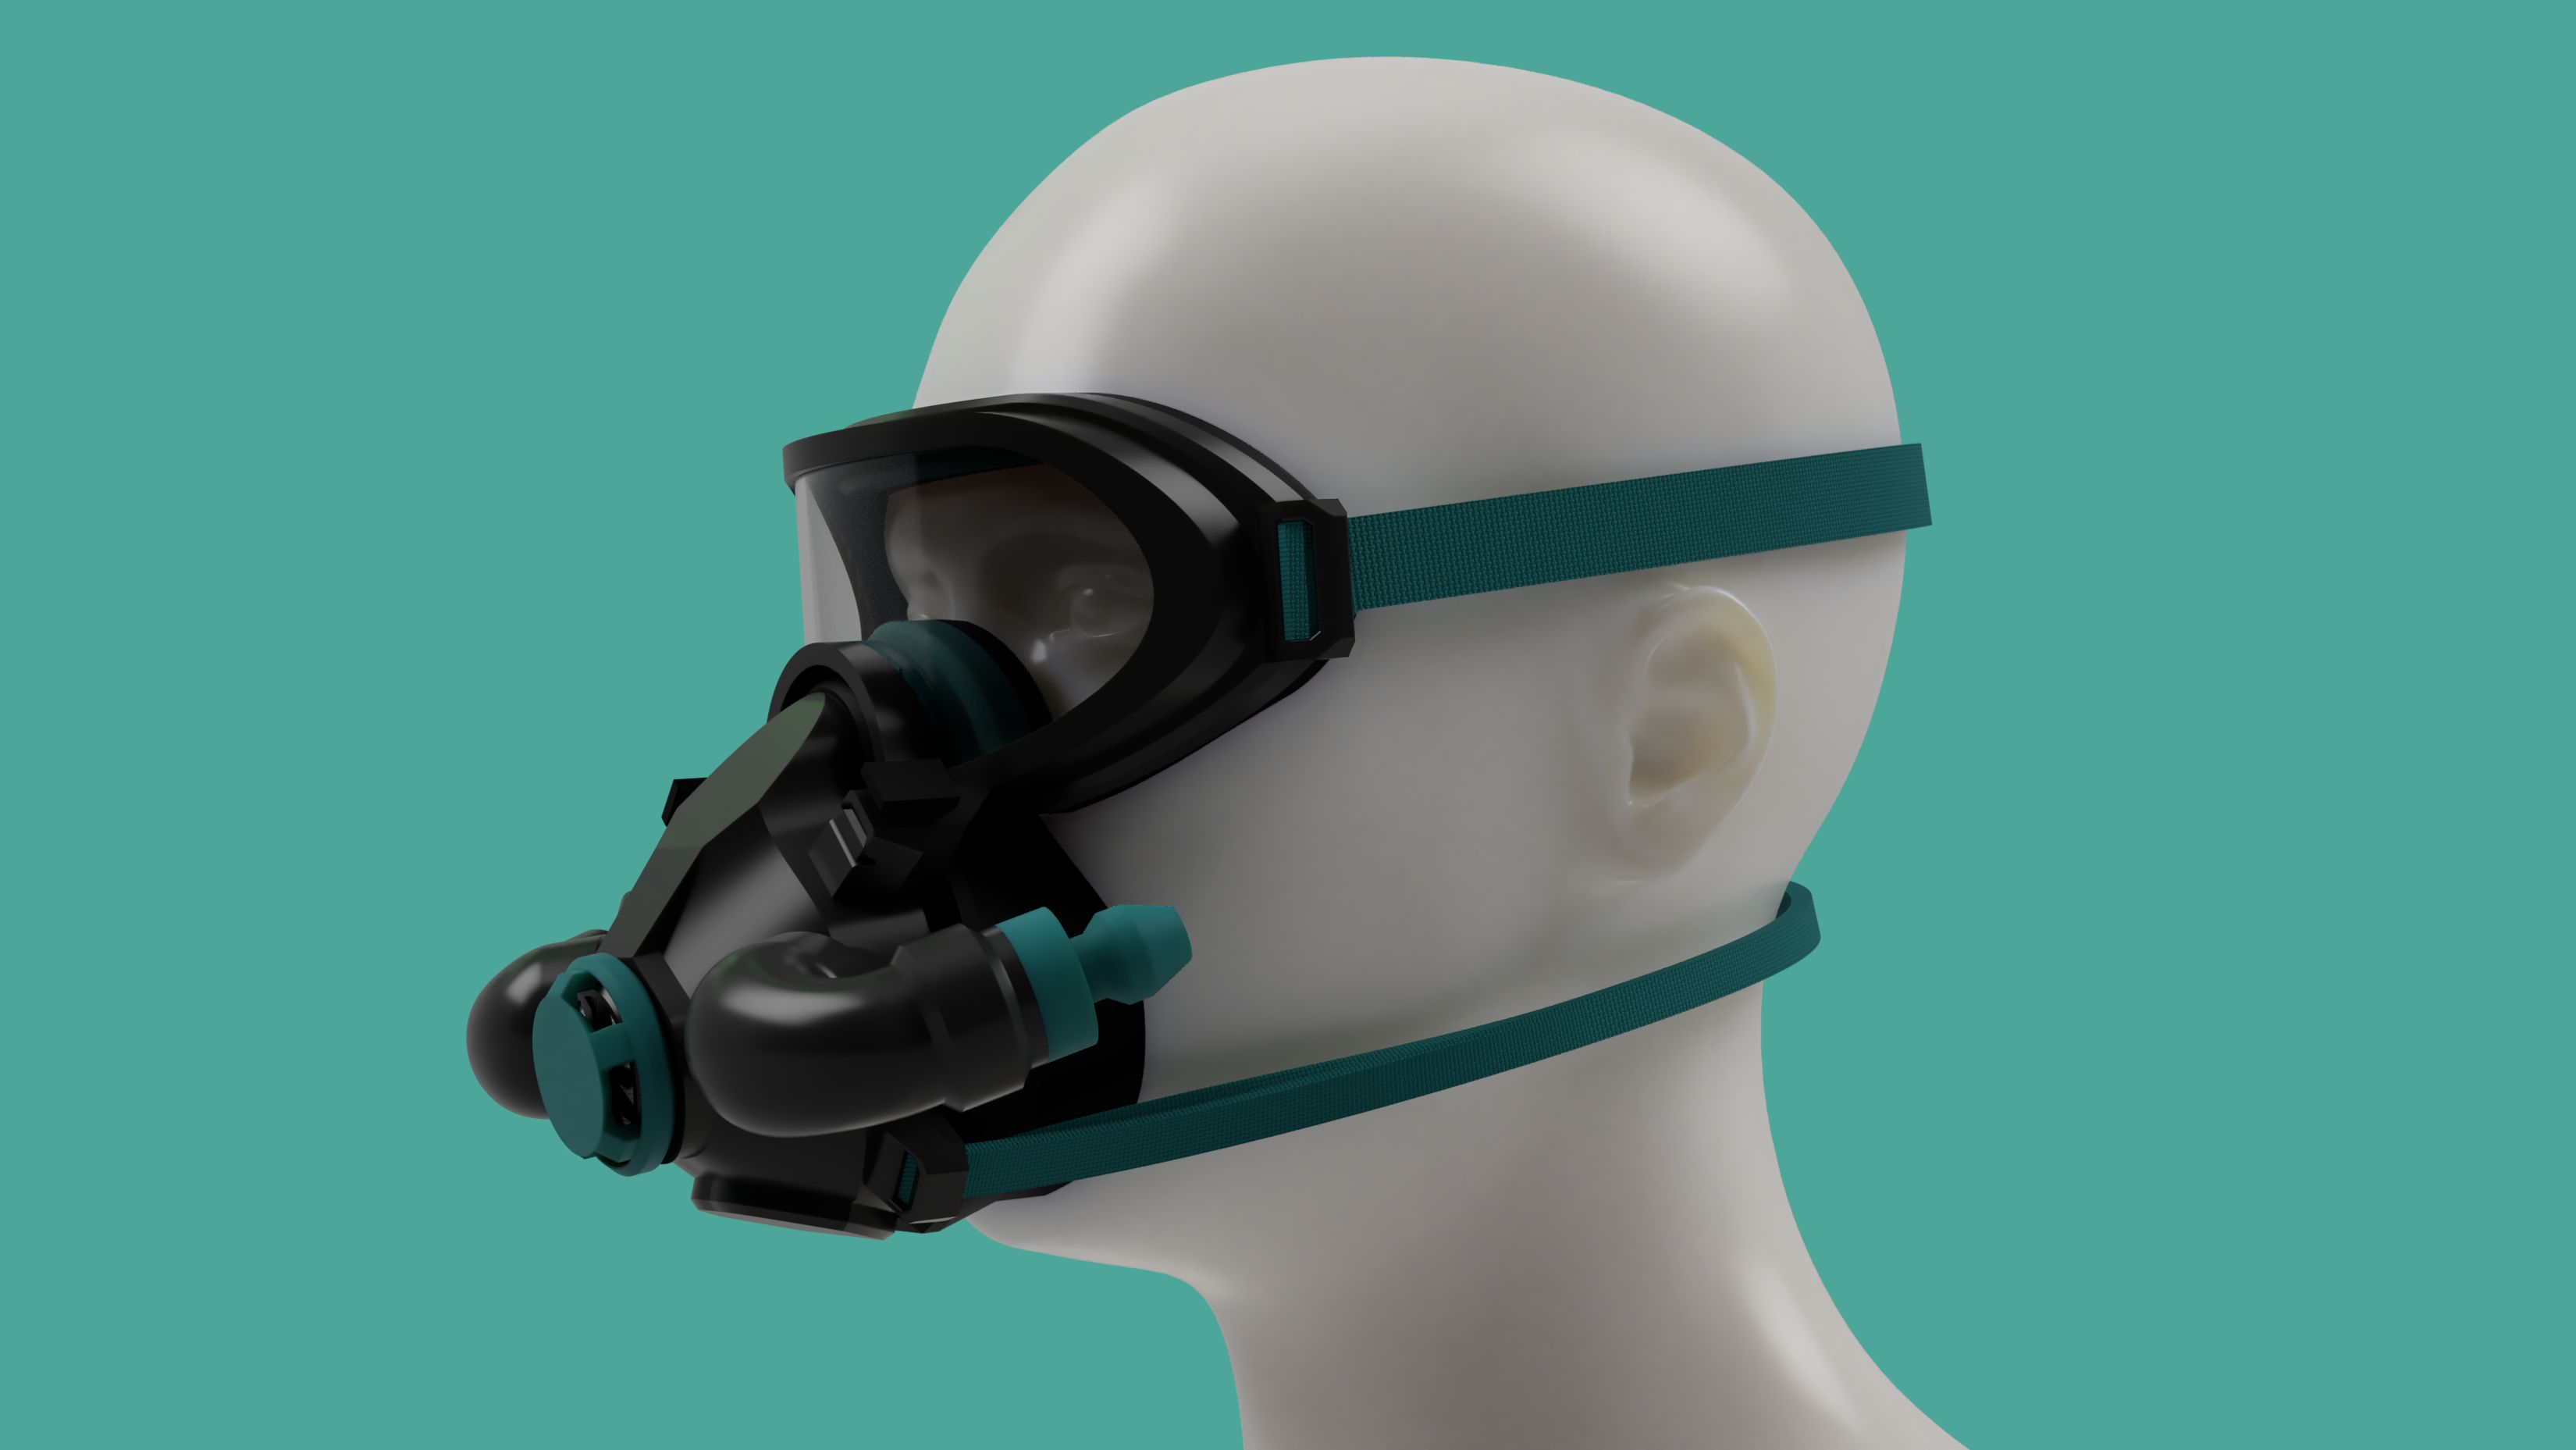 Gas-mask-v4-2020-may-15-03-07-14pm-000-customizedview4801833679-png-3500-3500